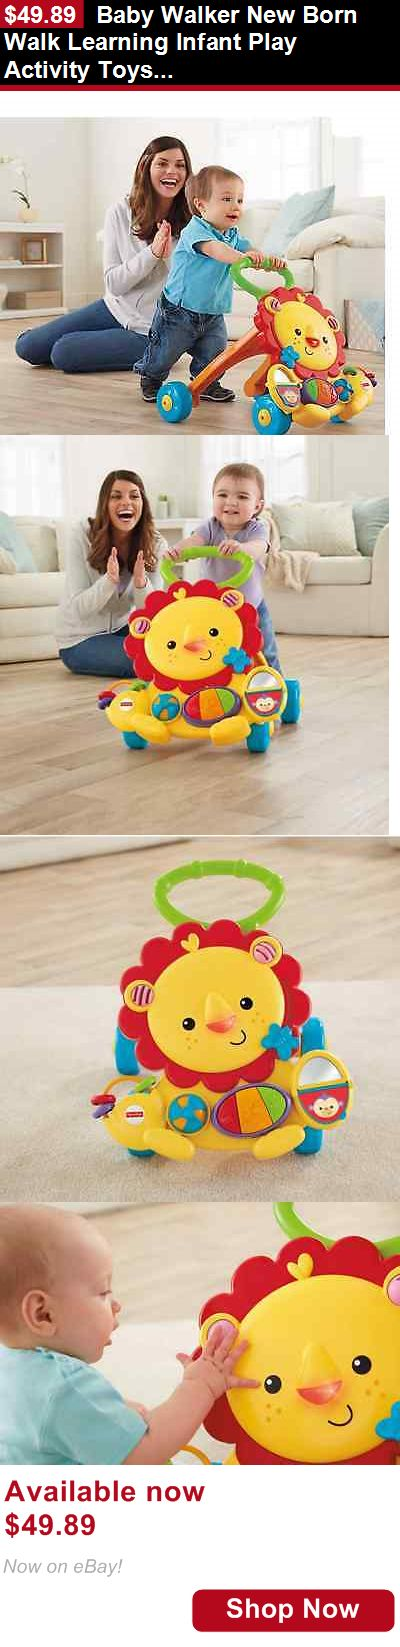 Baby walkers: Baby Walker New Born Walk Learning Infant Play Activity Toys Toddler Assistant BUY IT NOW ONLY: $49.89